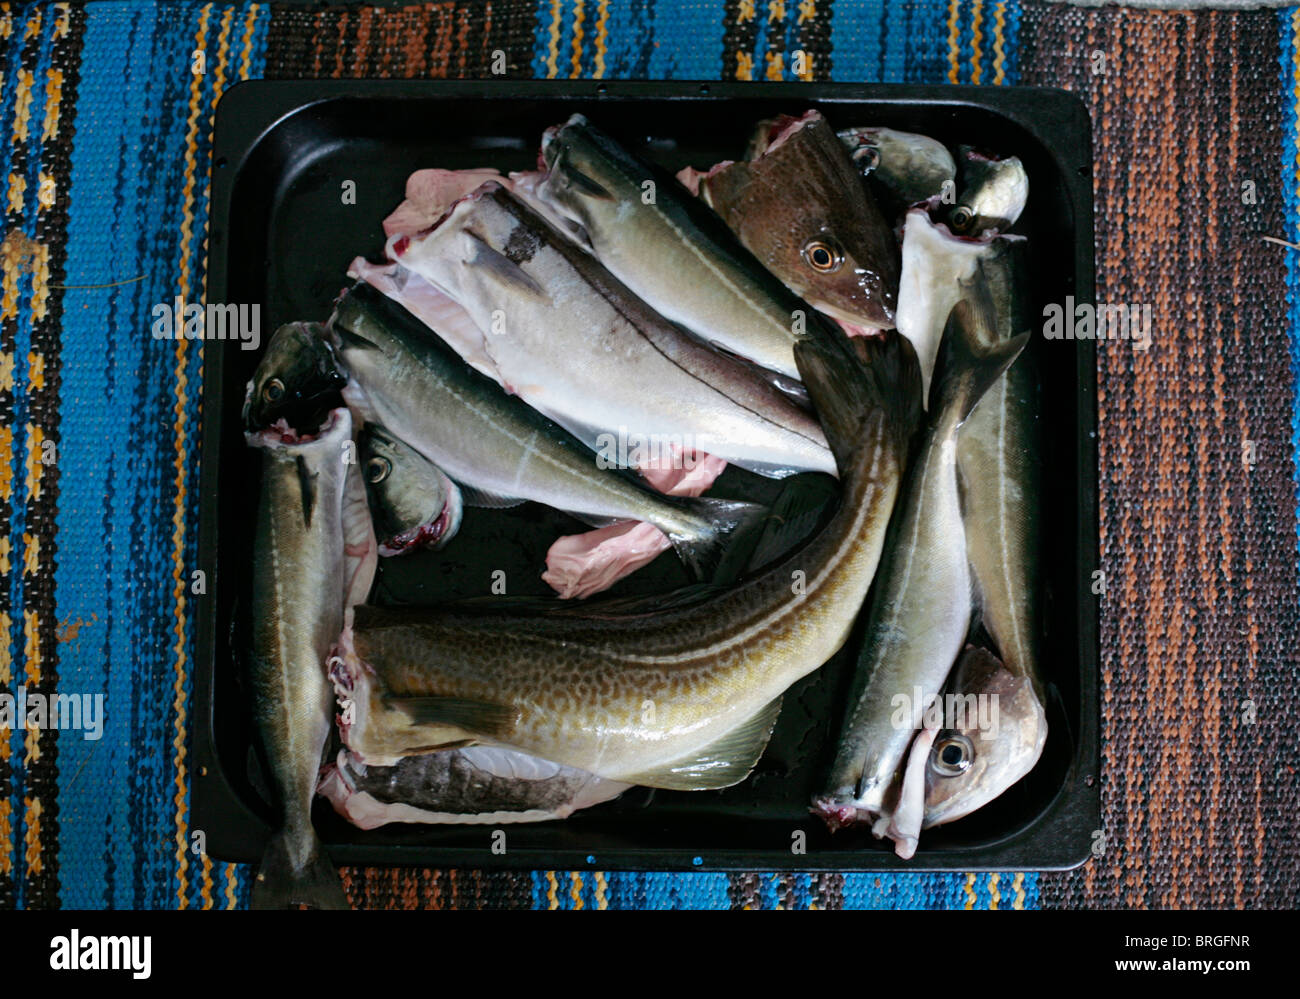 Cod and Pollack caught in the waters around the island of Vanna / Vannoya, Northern Norway. - Stock Image